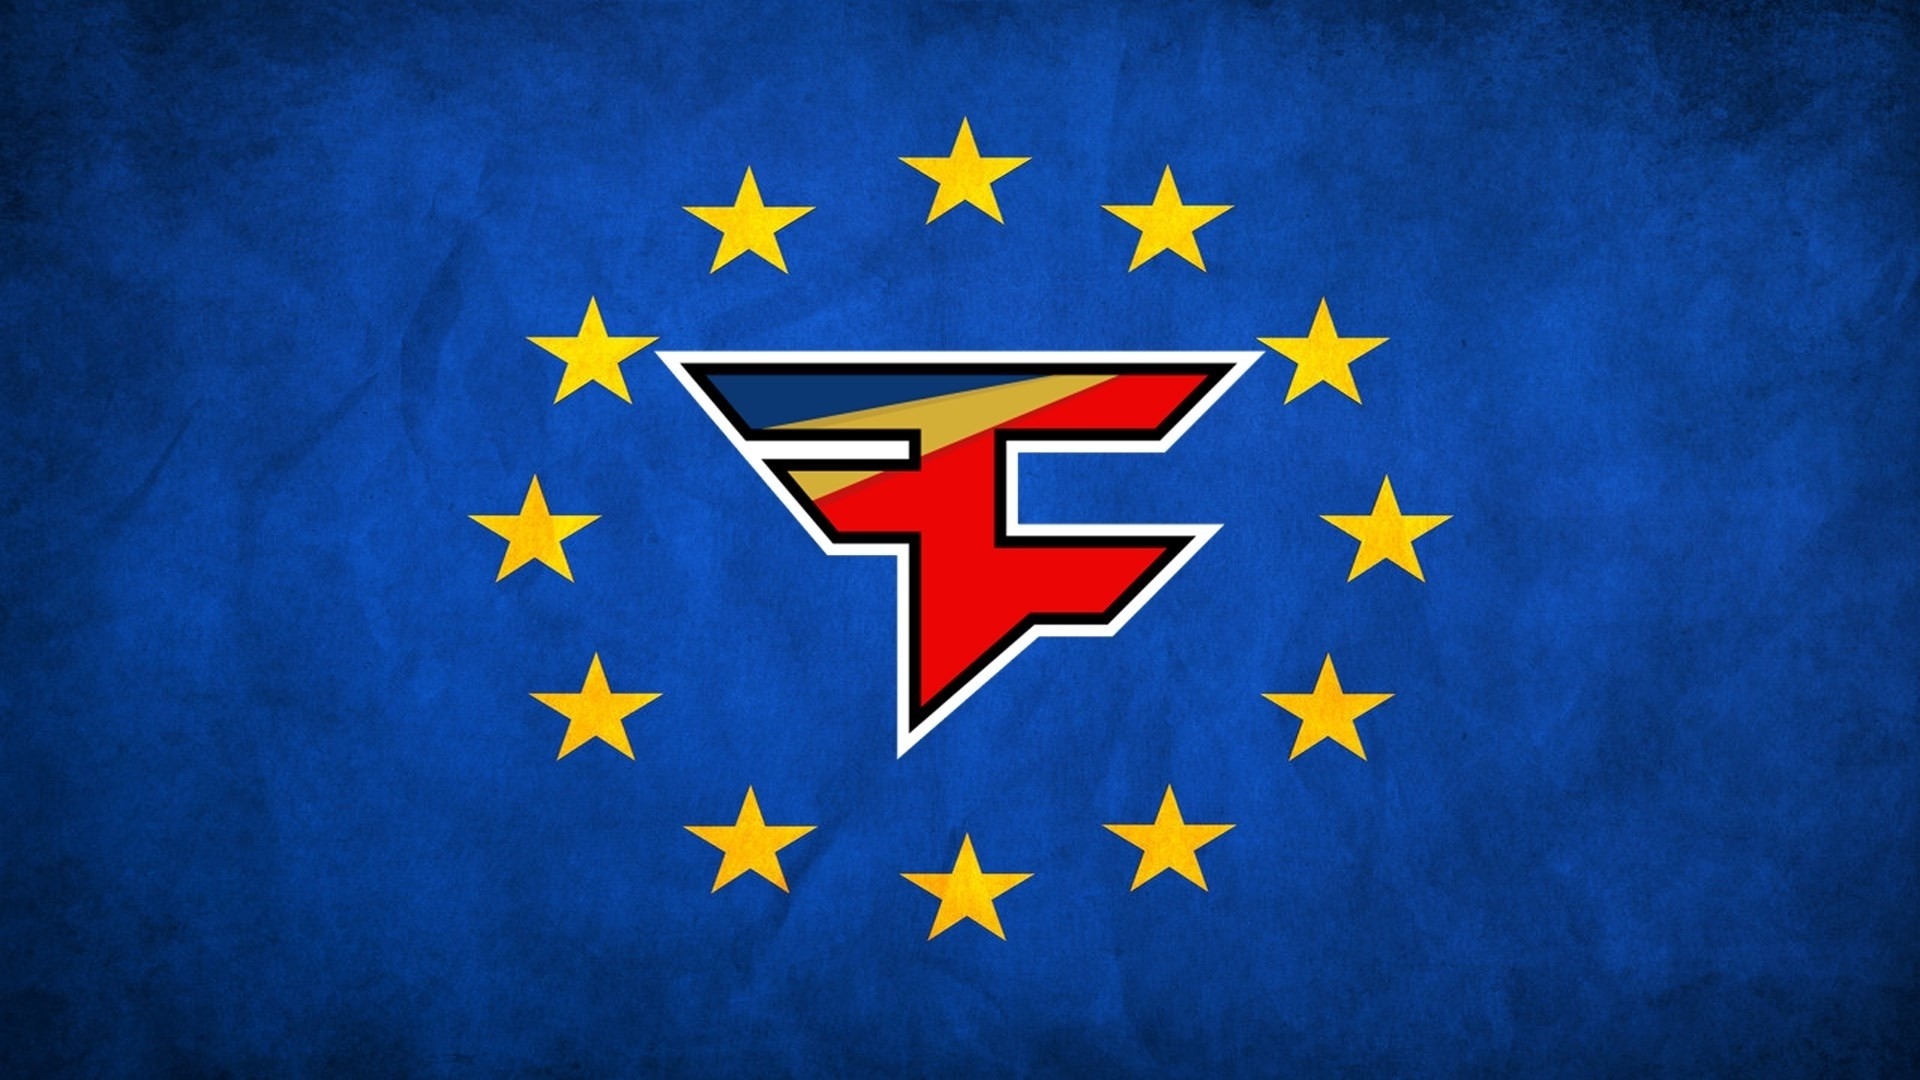 Faze Free Wallpaper and Background